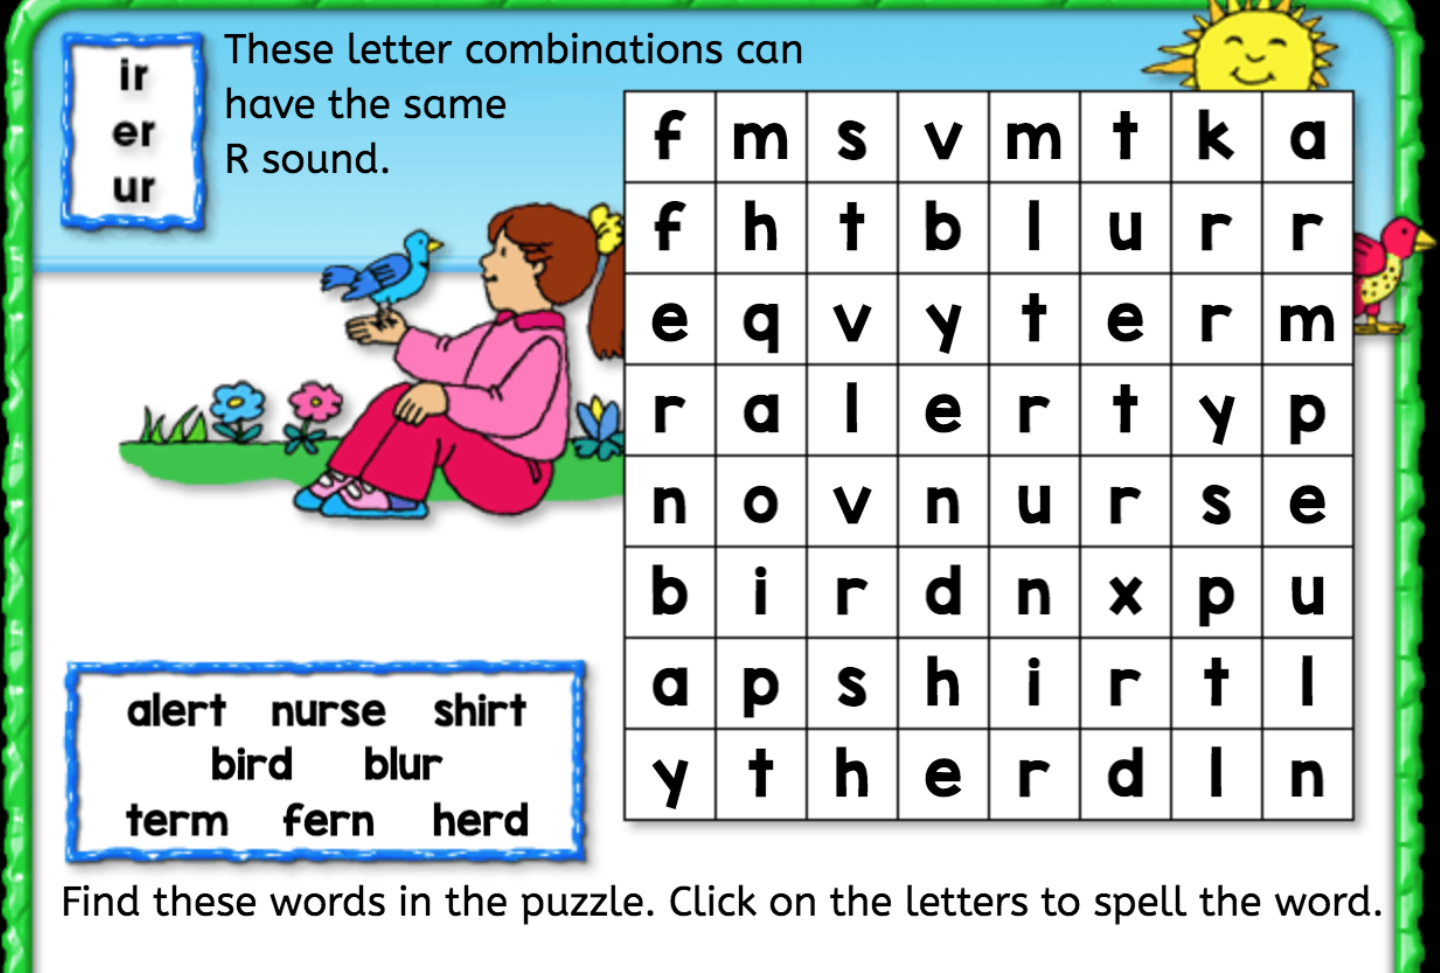 Word Search er ir ur Interactive Worksheets